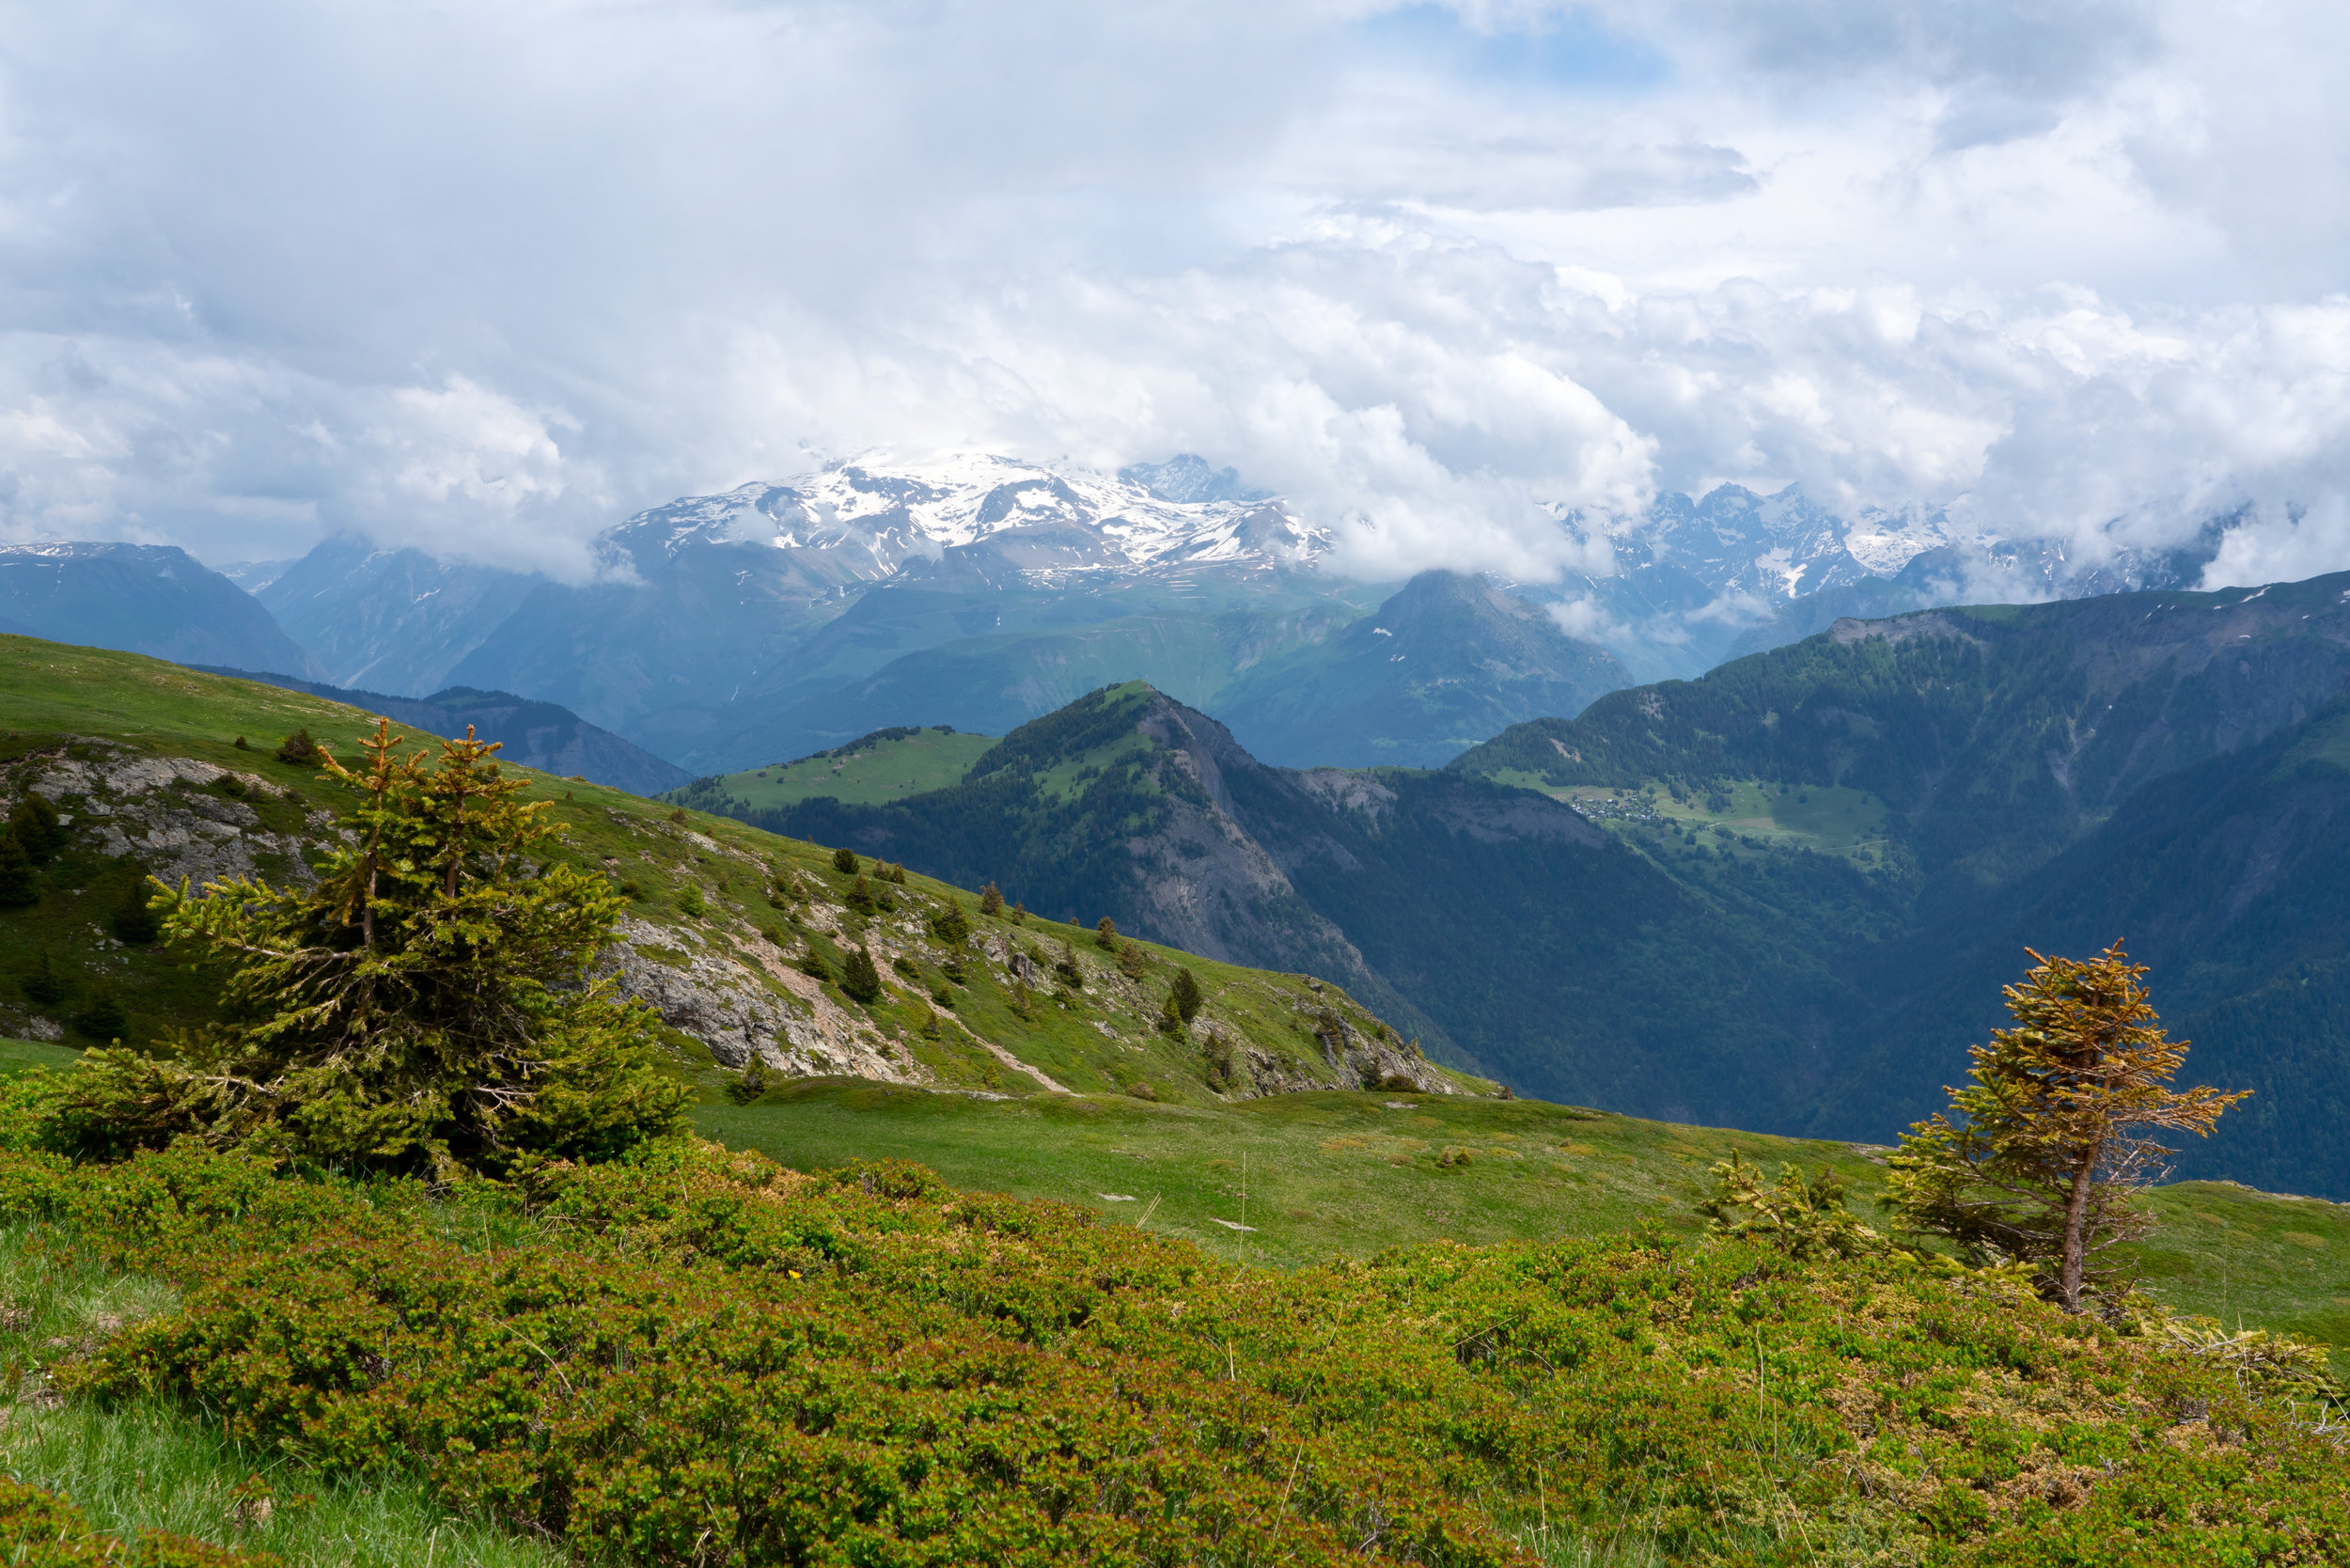 Looking down towards Bourg d'Oisans, L'Alpe d'Huez.